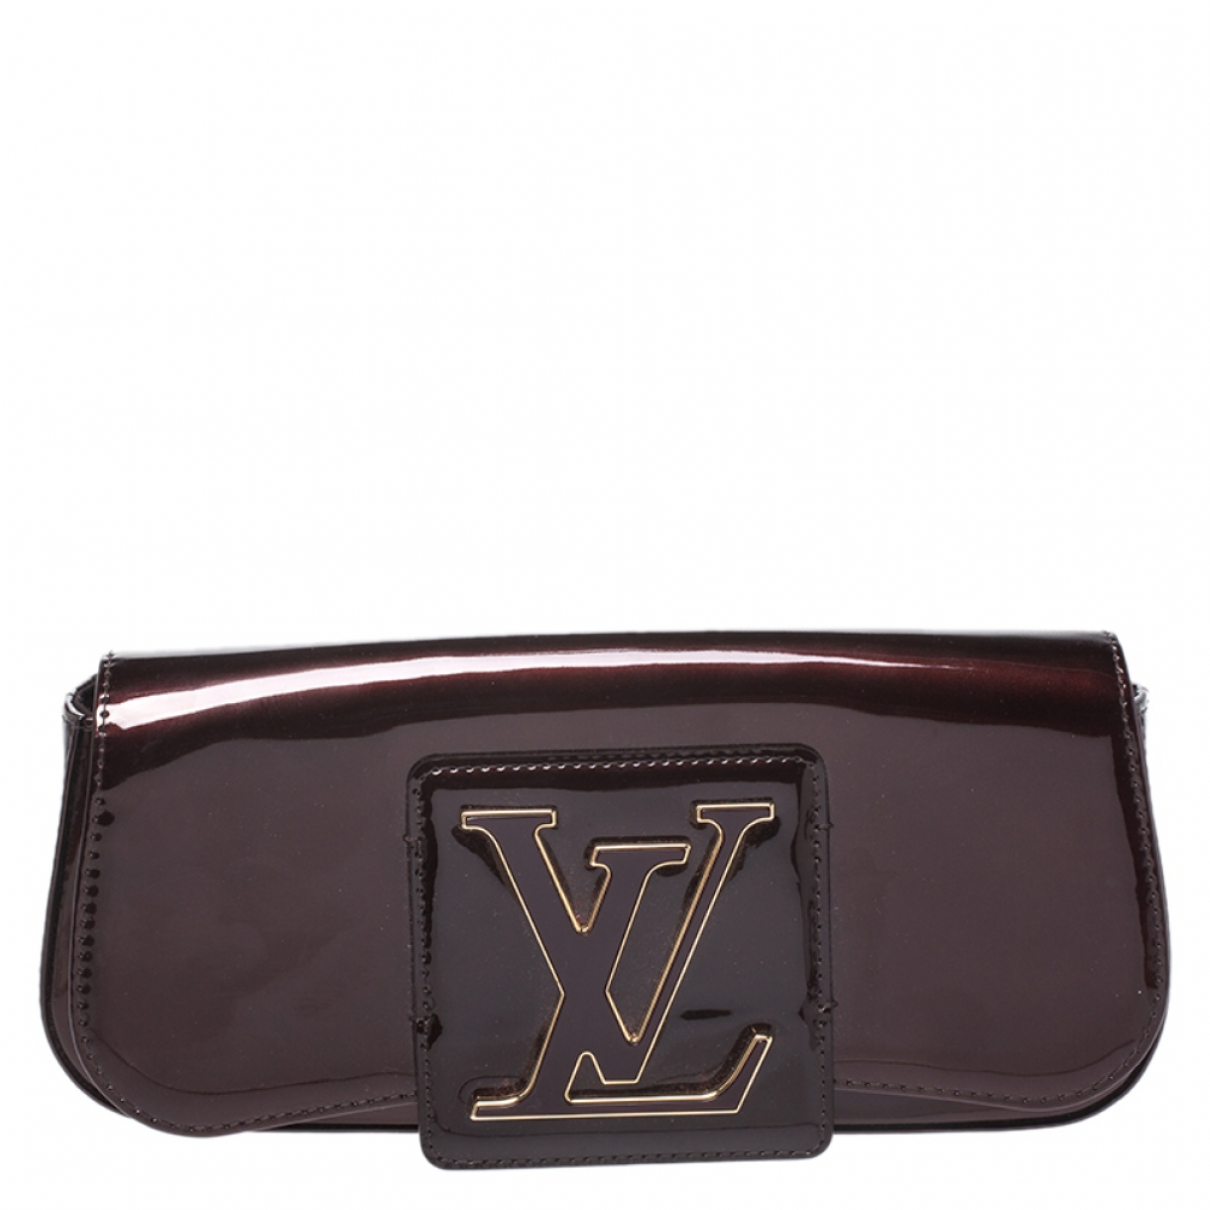 Louis Vuitton N Burgundy Patent leather Clutch bag for Women N